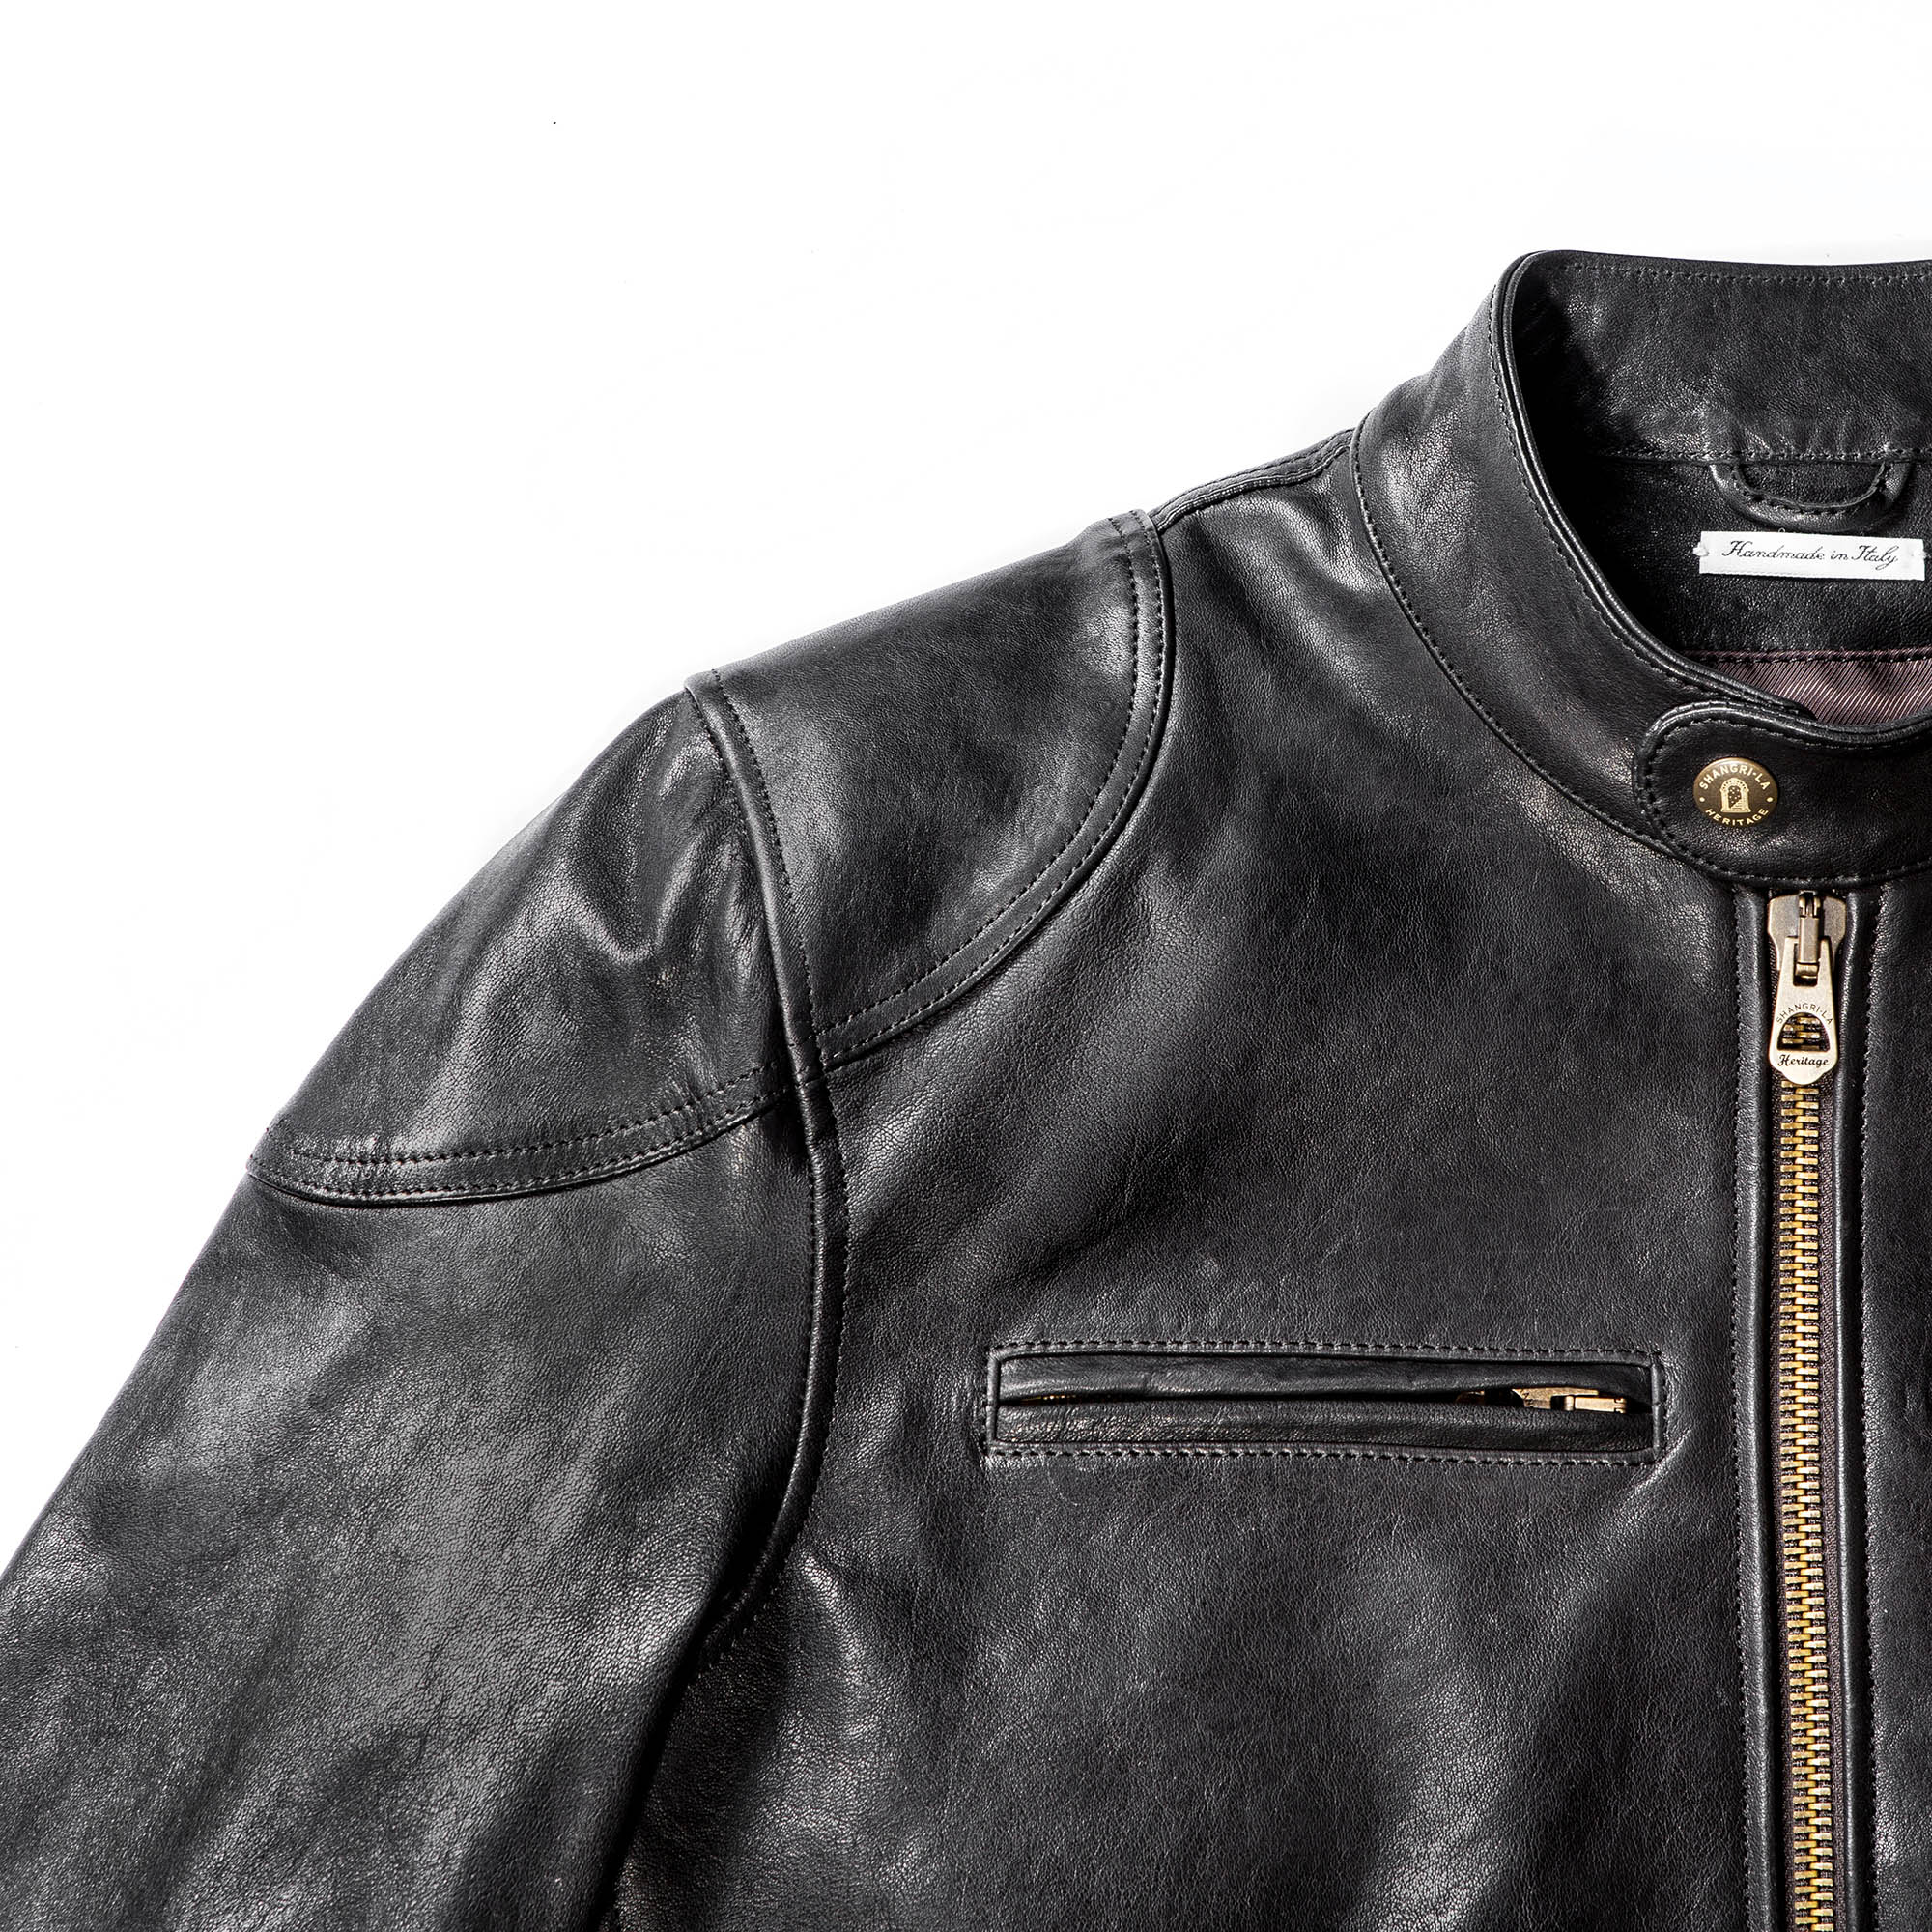 shangri-la-heritage-cafe-racer-black-lambskin-jacket-still-life-shoulder